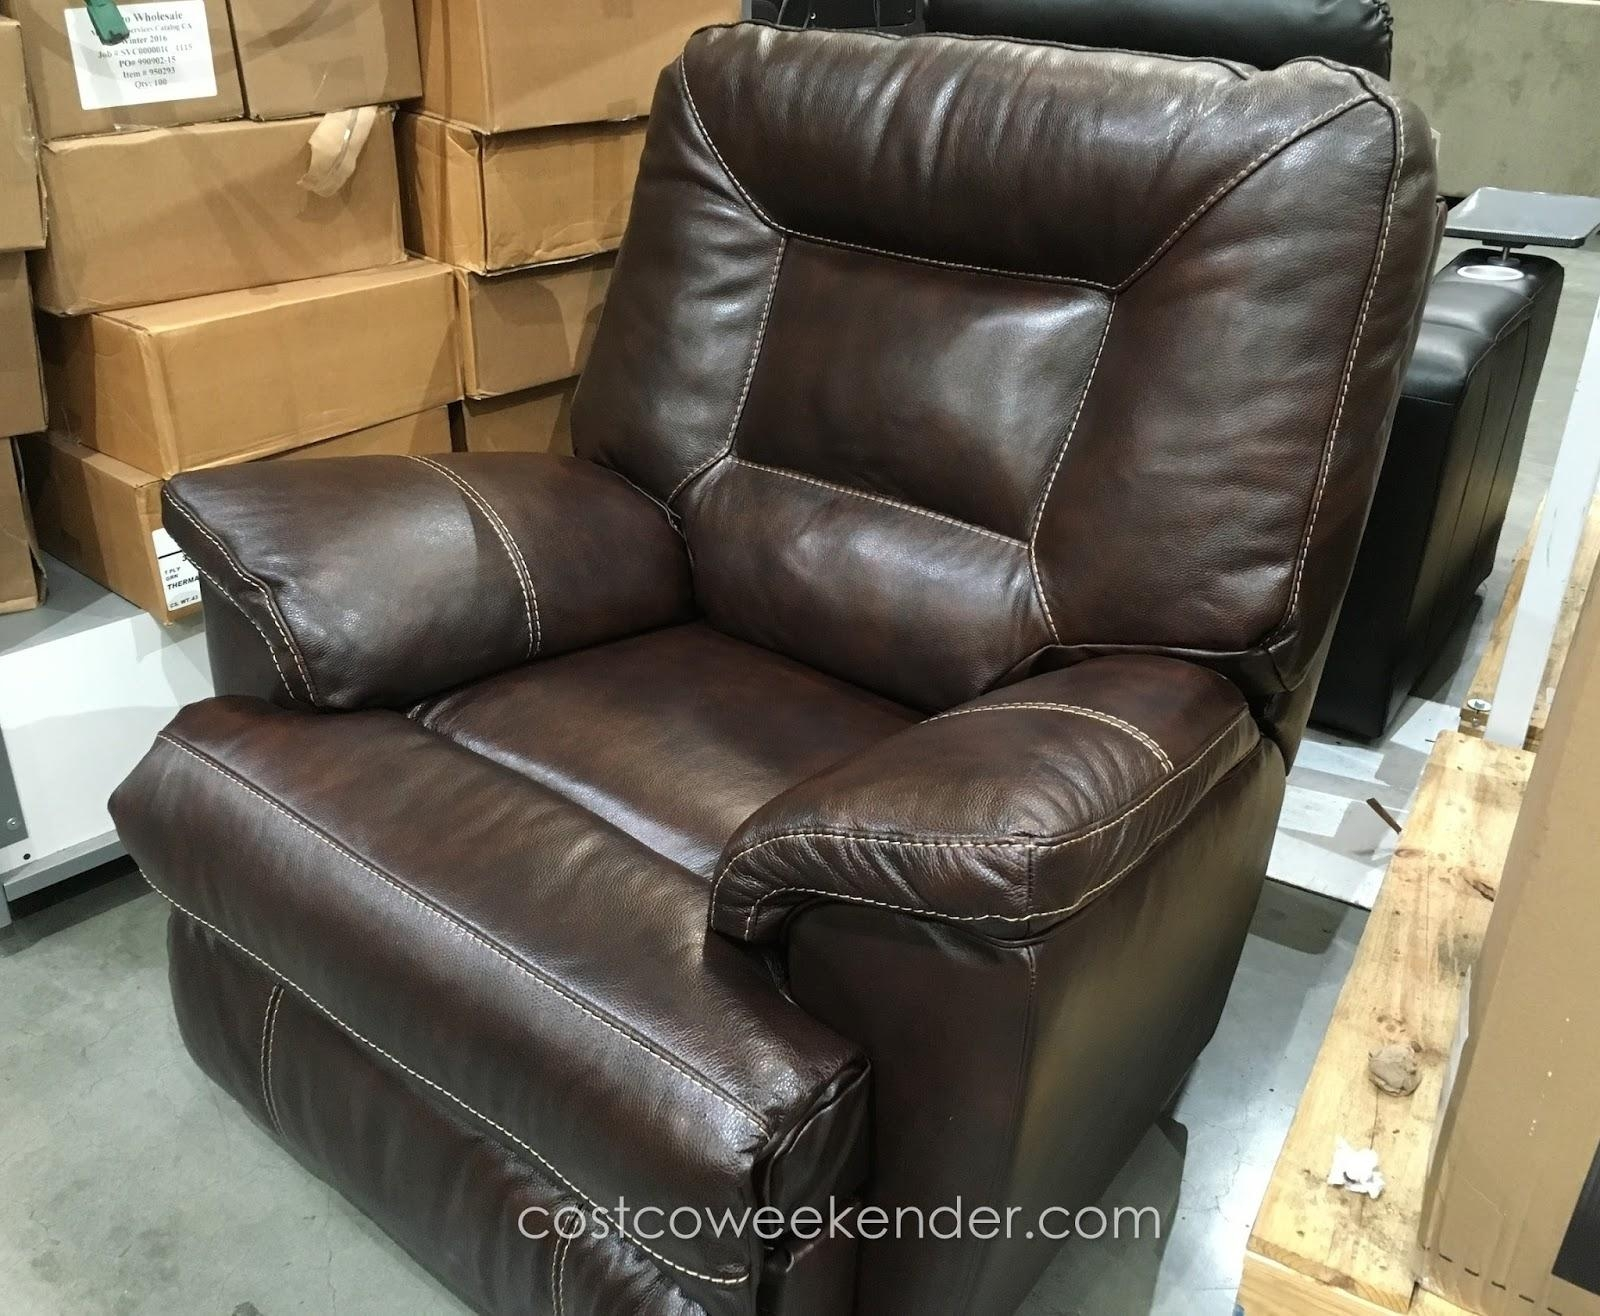 Furniture & Sofa: Enjoy Your Holiday With Costco Home Theater Inside Berkline Leather Sofas (View 3 of 20)